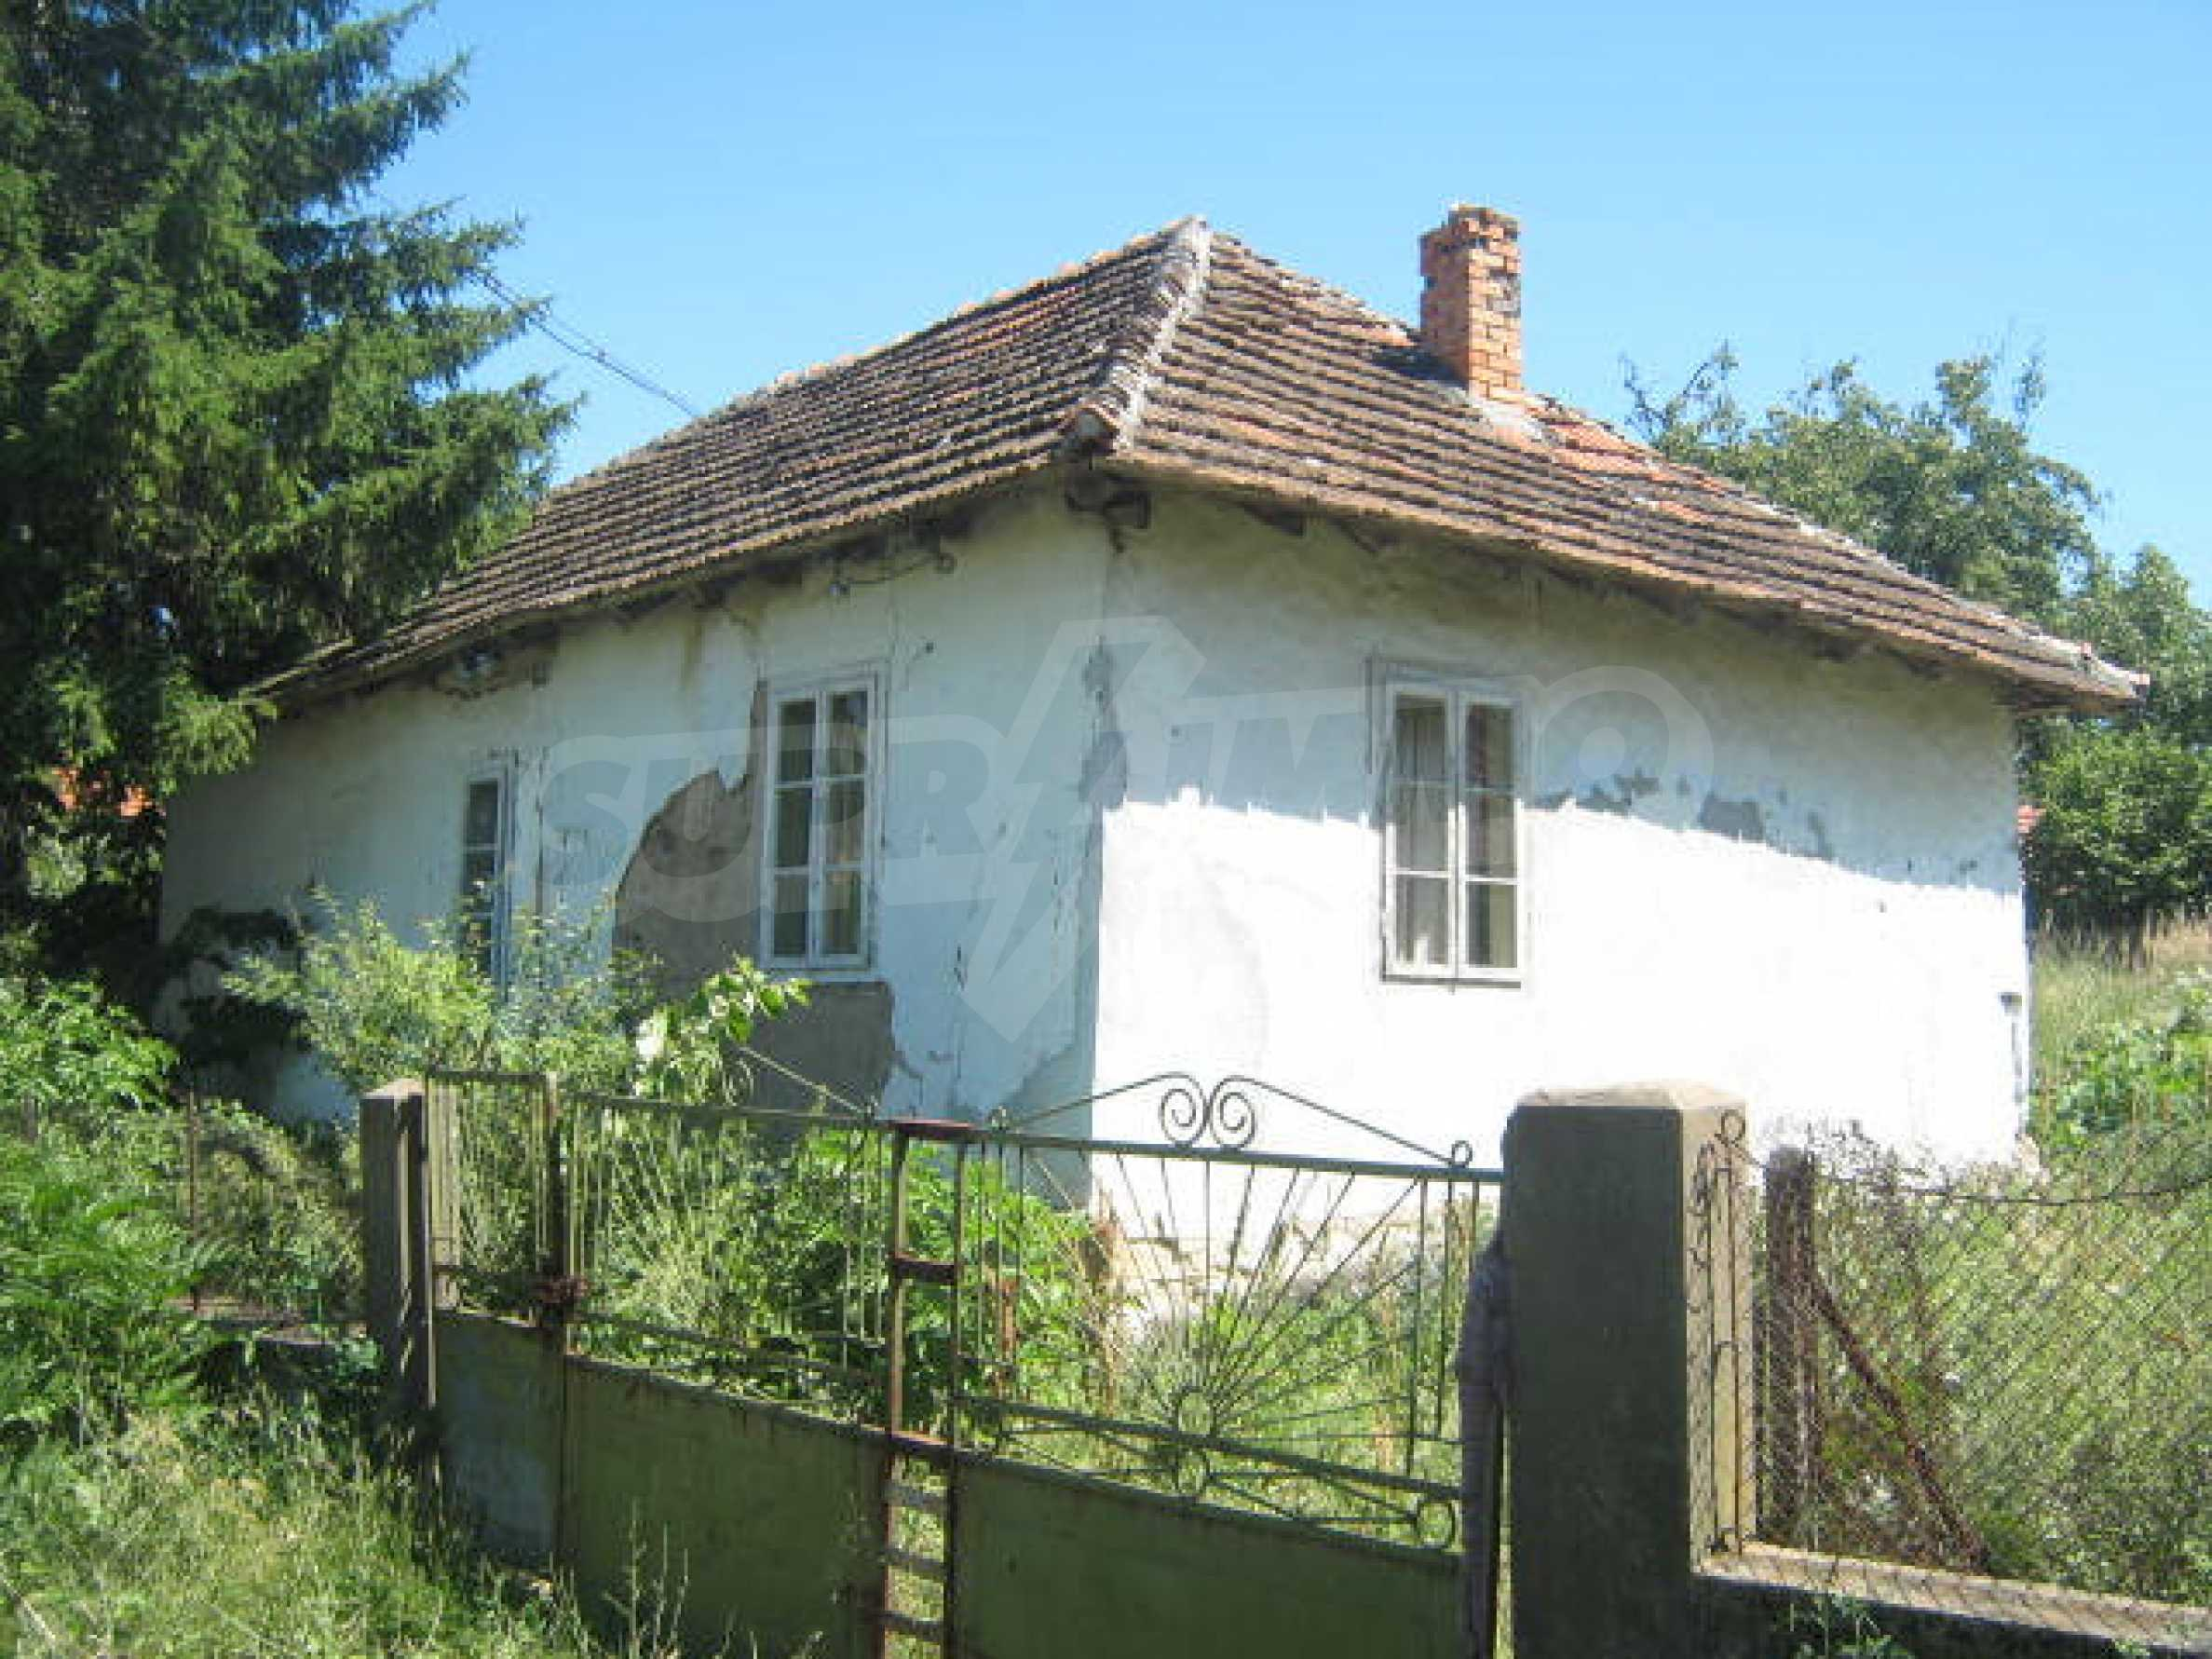 Old house in rural community 10